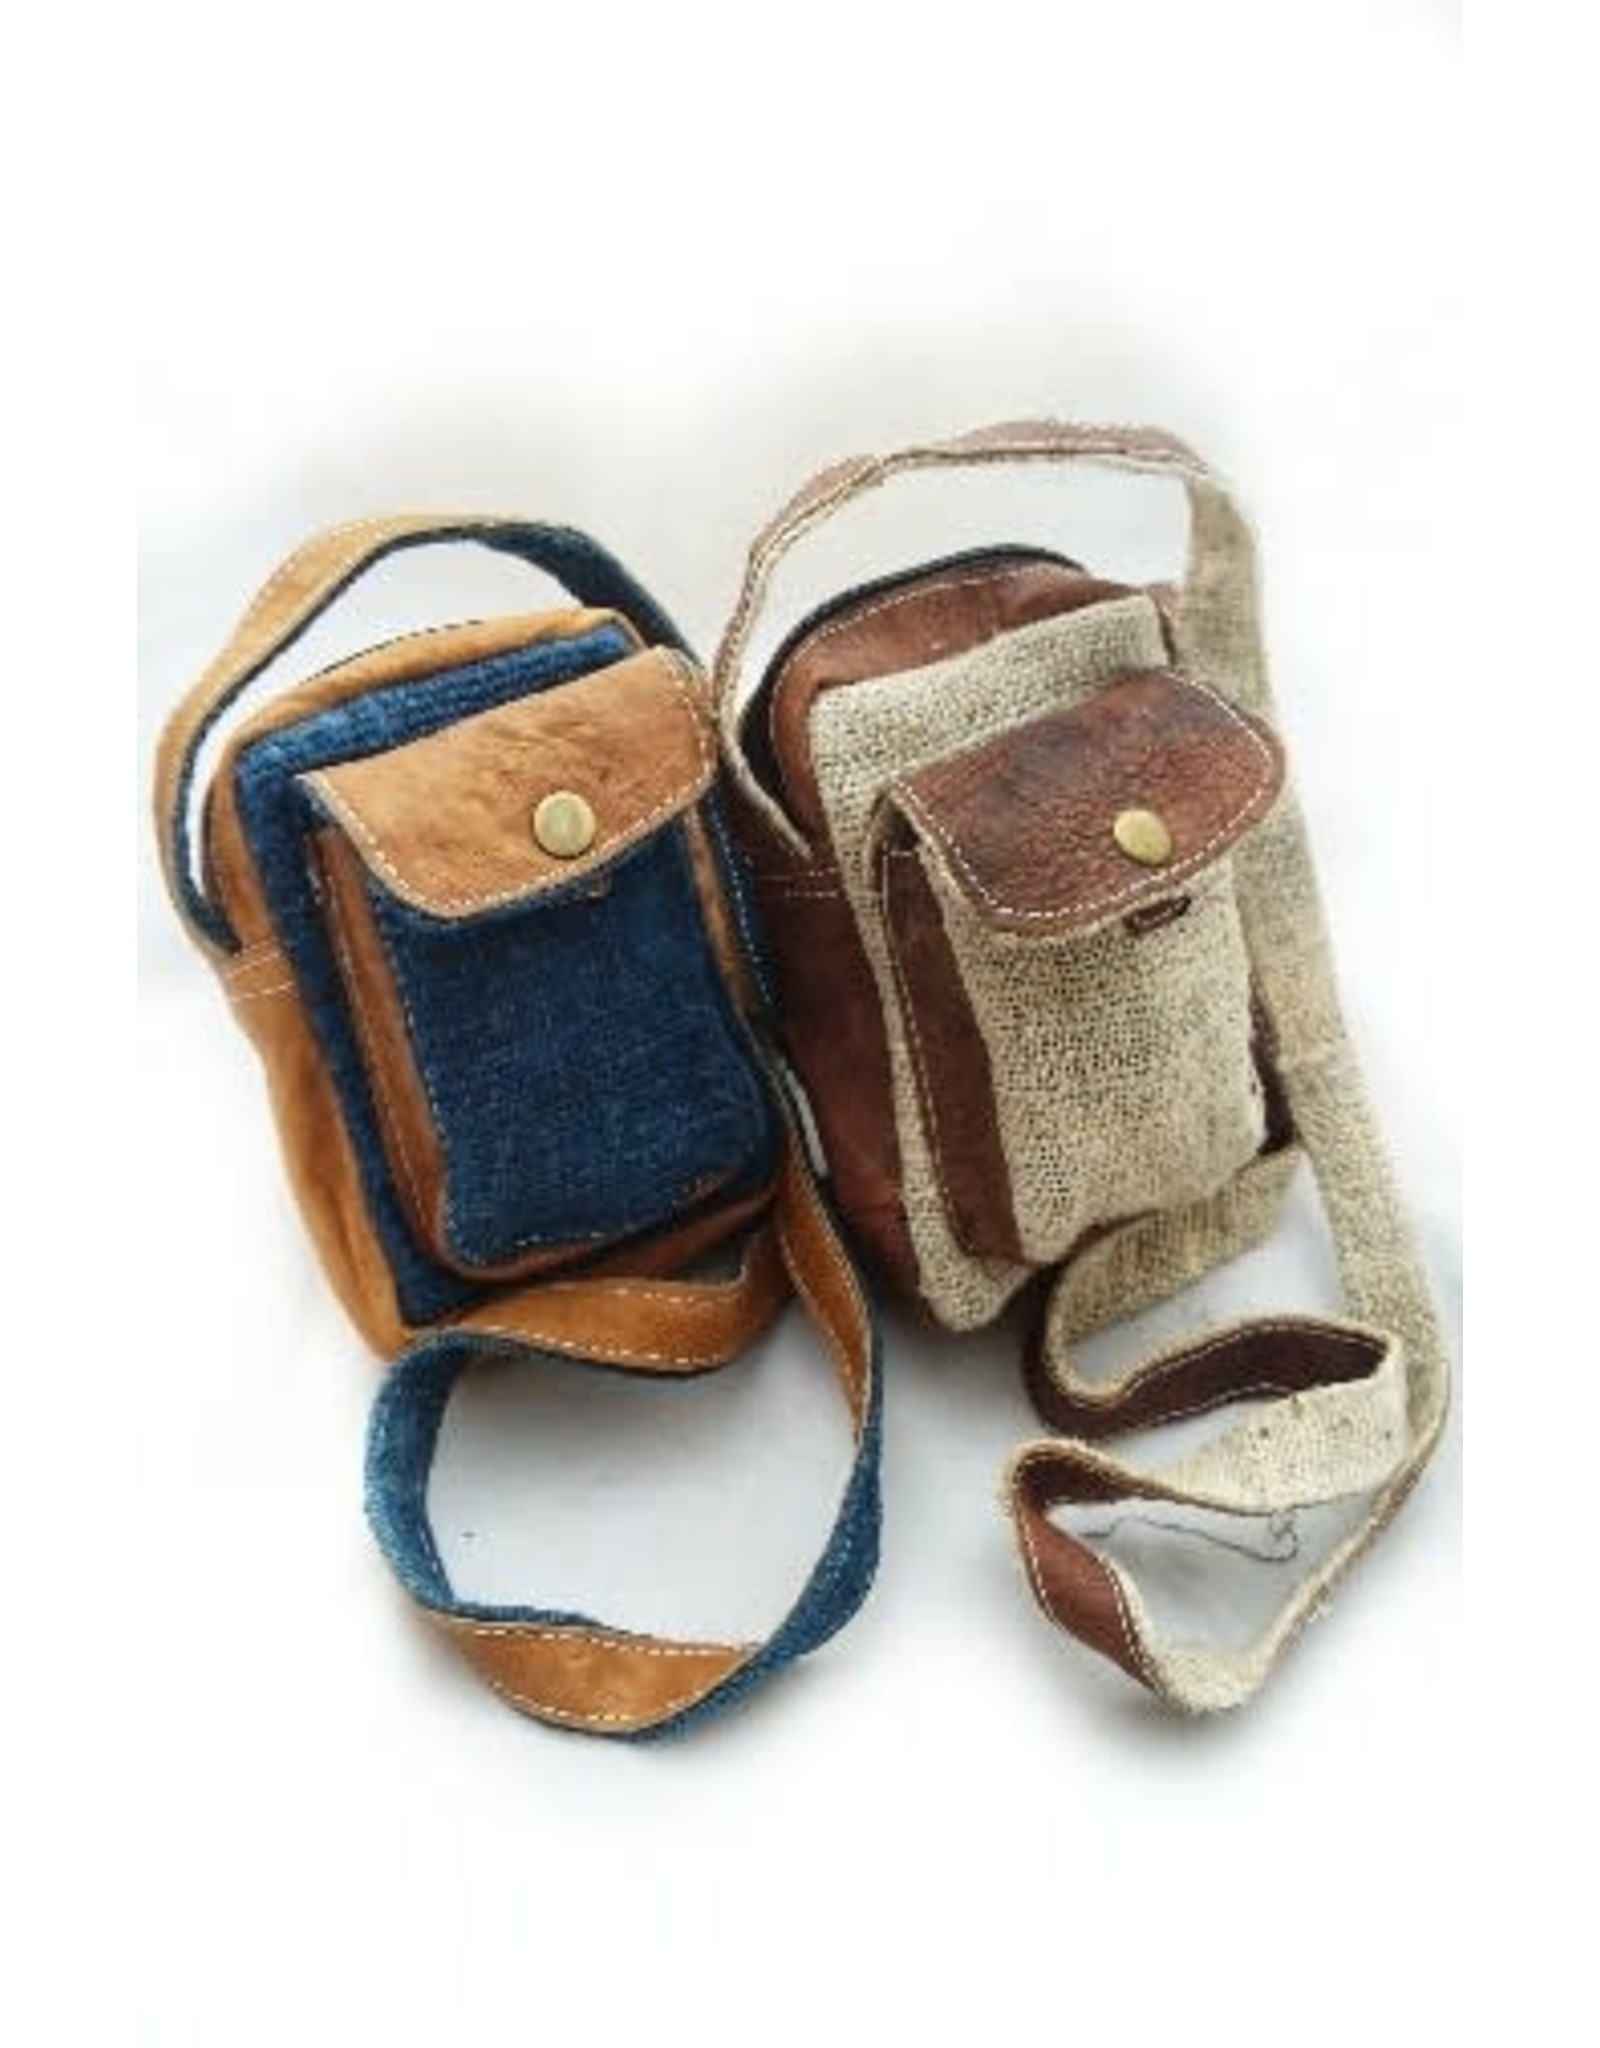 Small Hemp Leather Camera Bag, Nepal